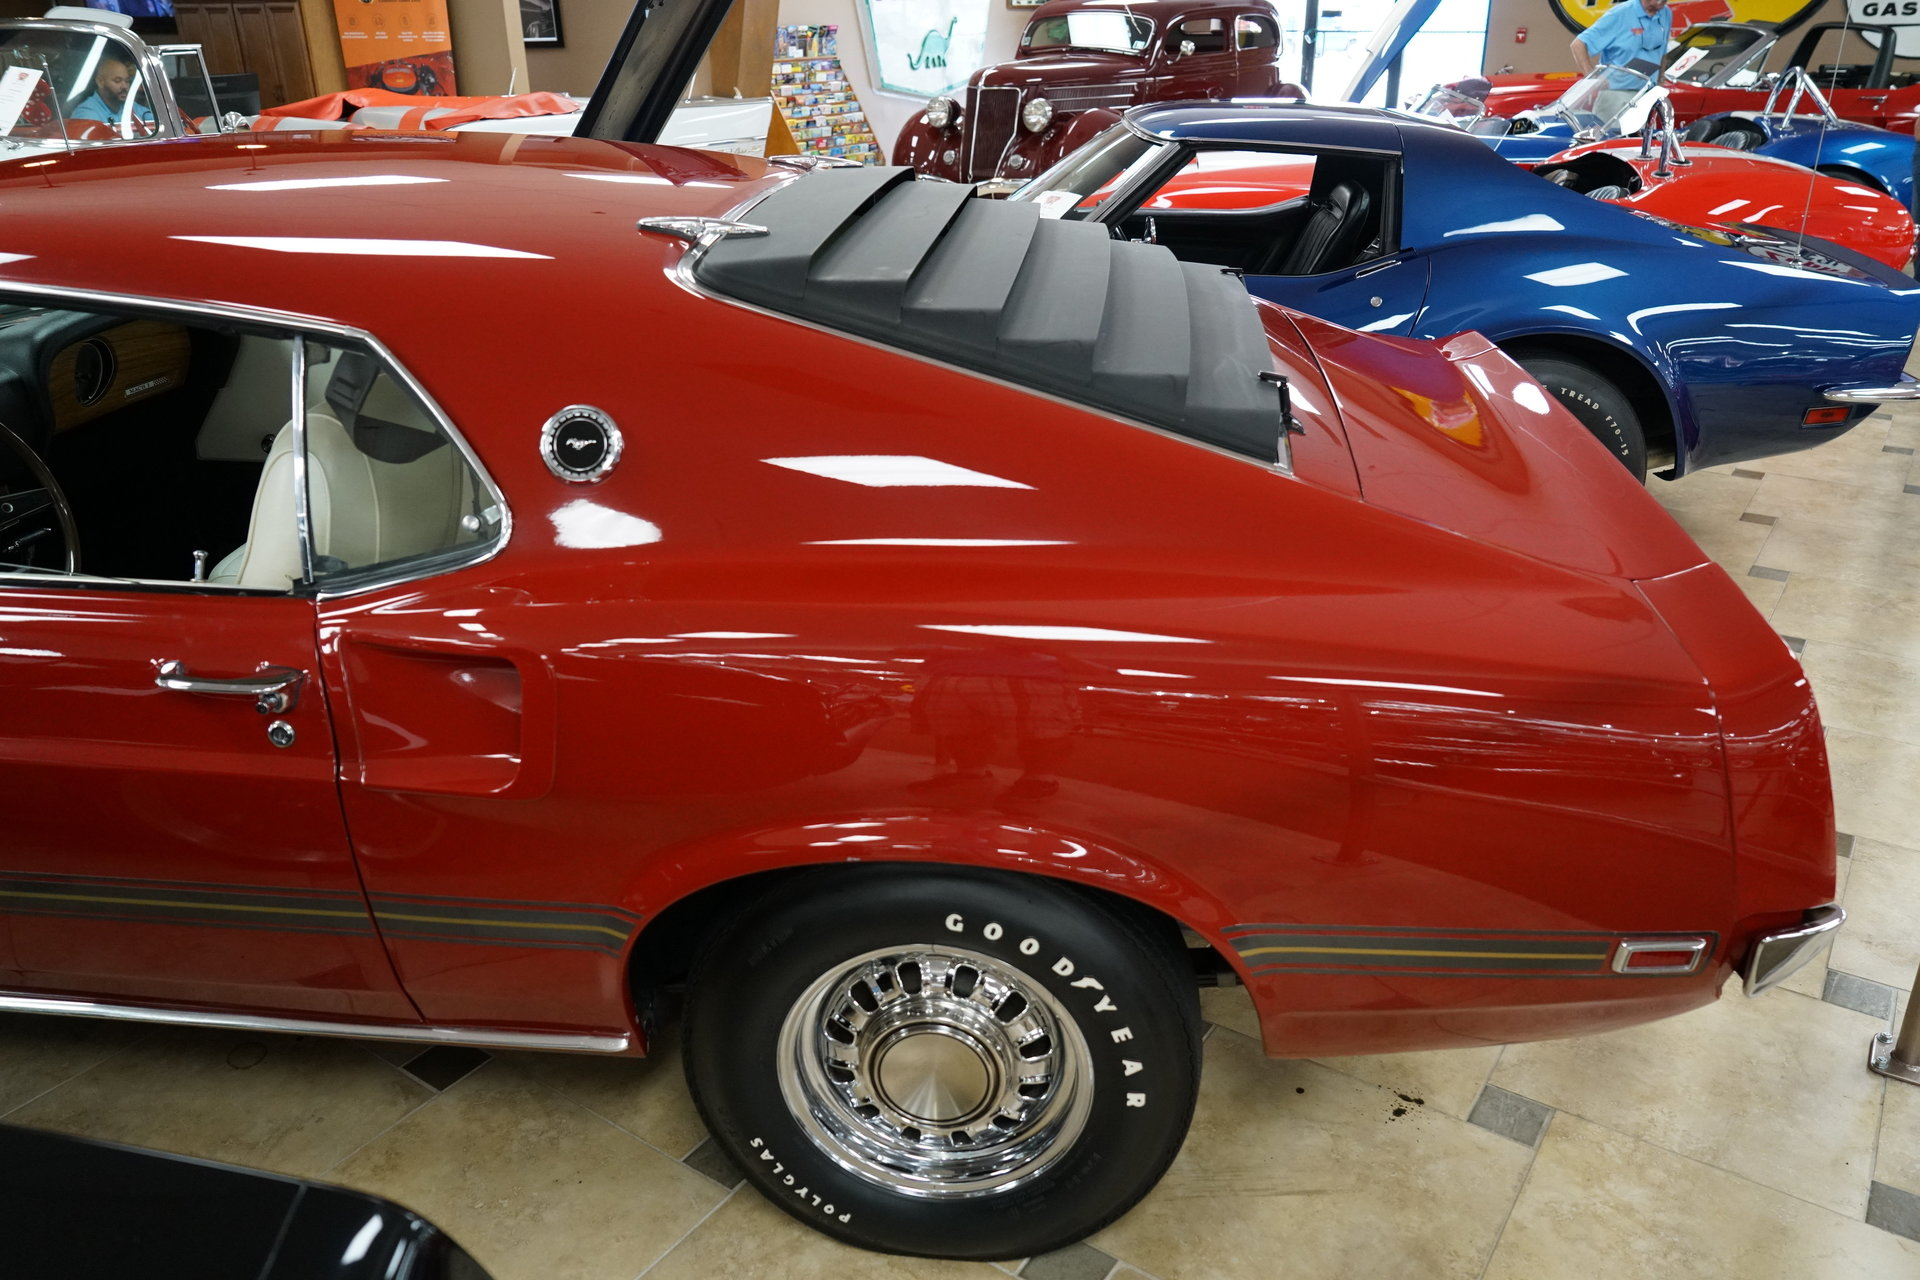 1969 Ford Mustang Ideal Classic Cars Llc Mach 1 Shaker Scoop 137407e1f85fd Low Res